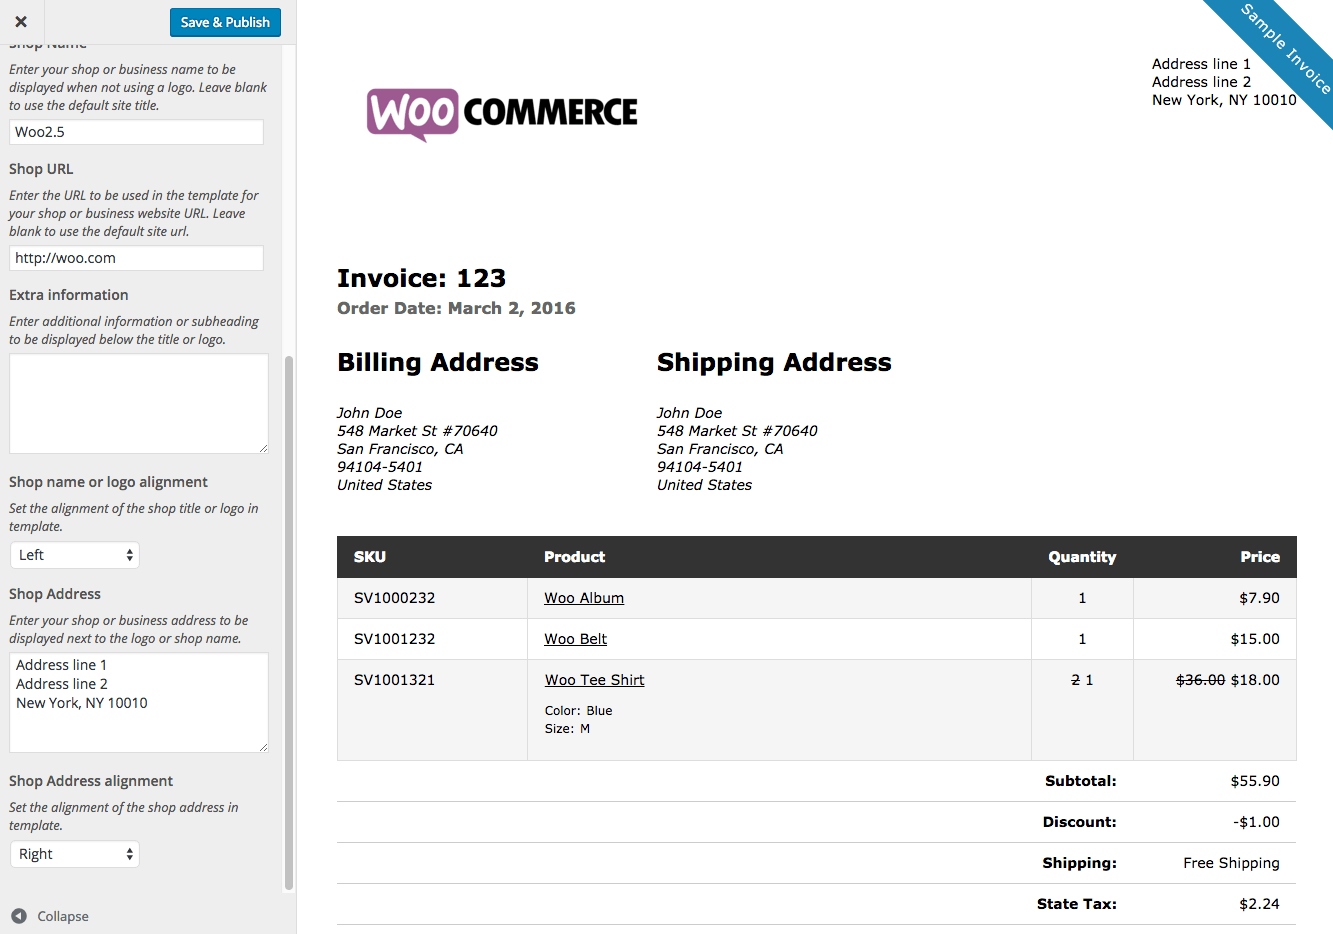 Ebitus  Unique Woocommerce Print Invoices Amp Packing Lists  Woocommerce Docs With Lovable Woocommerce Print Invoices  Packing Lists Customizer With Delectable How Do I Make A Receipt Also Global Depository Receipts Example In Addition Cash Receipts Journal Sample And Cash Receipting As Well As Baking Receipts Additionally Receipt Letter Format From Docswoocommercecom With Ebitus  Lovable Woocommerce Print Invoices Amp Packing Lists  Woocommerce Docs With Delectable Woocommerce Print Invoices  Packing Lists Customizer And Unique How Do I Make A Receipt Also Global Depository Receipts Example In Addition Cash Receipts Journal Sample From Docswoocommercecom